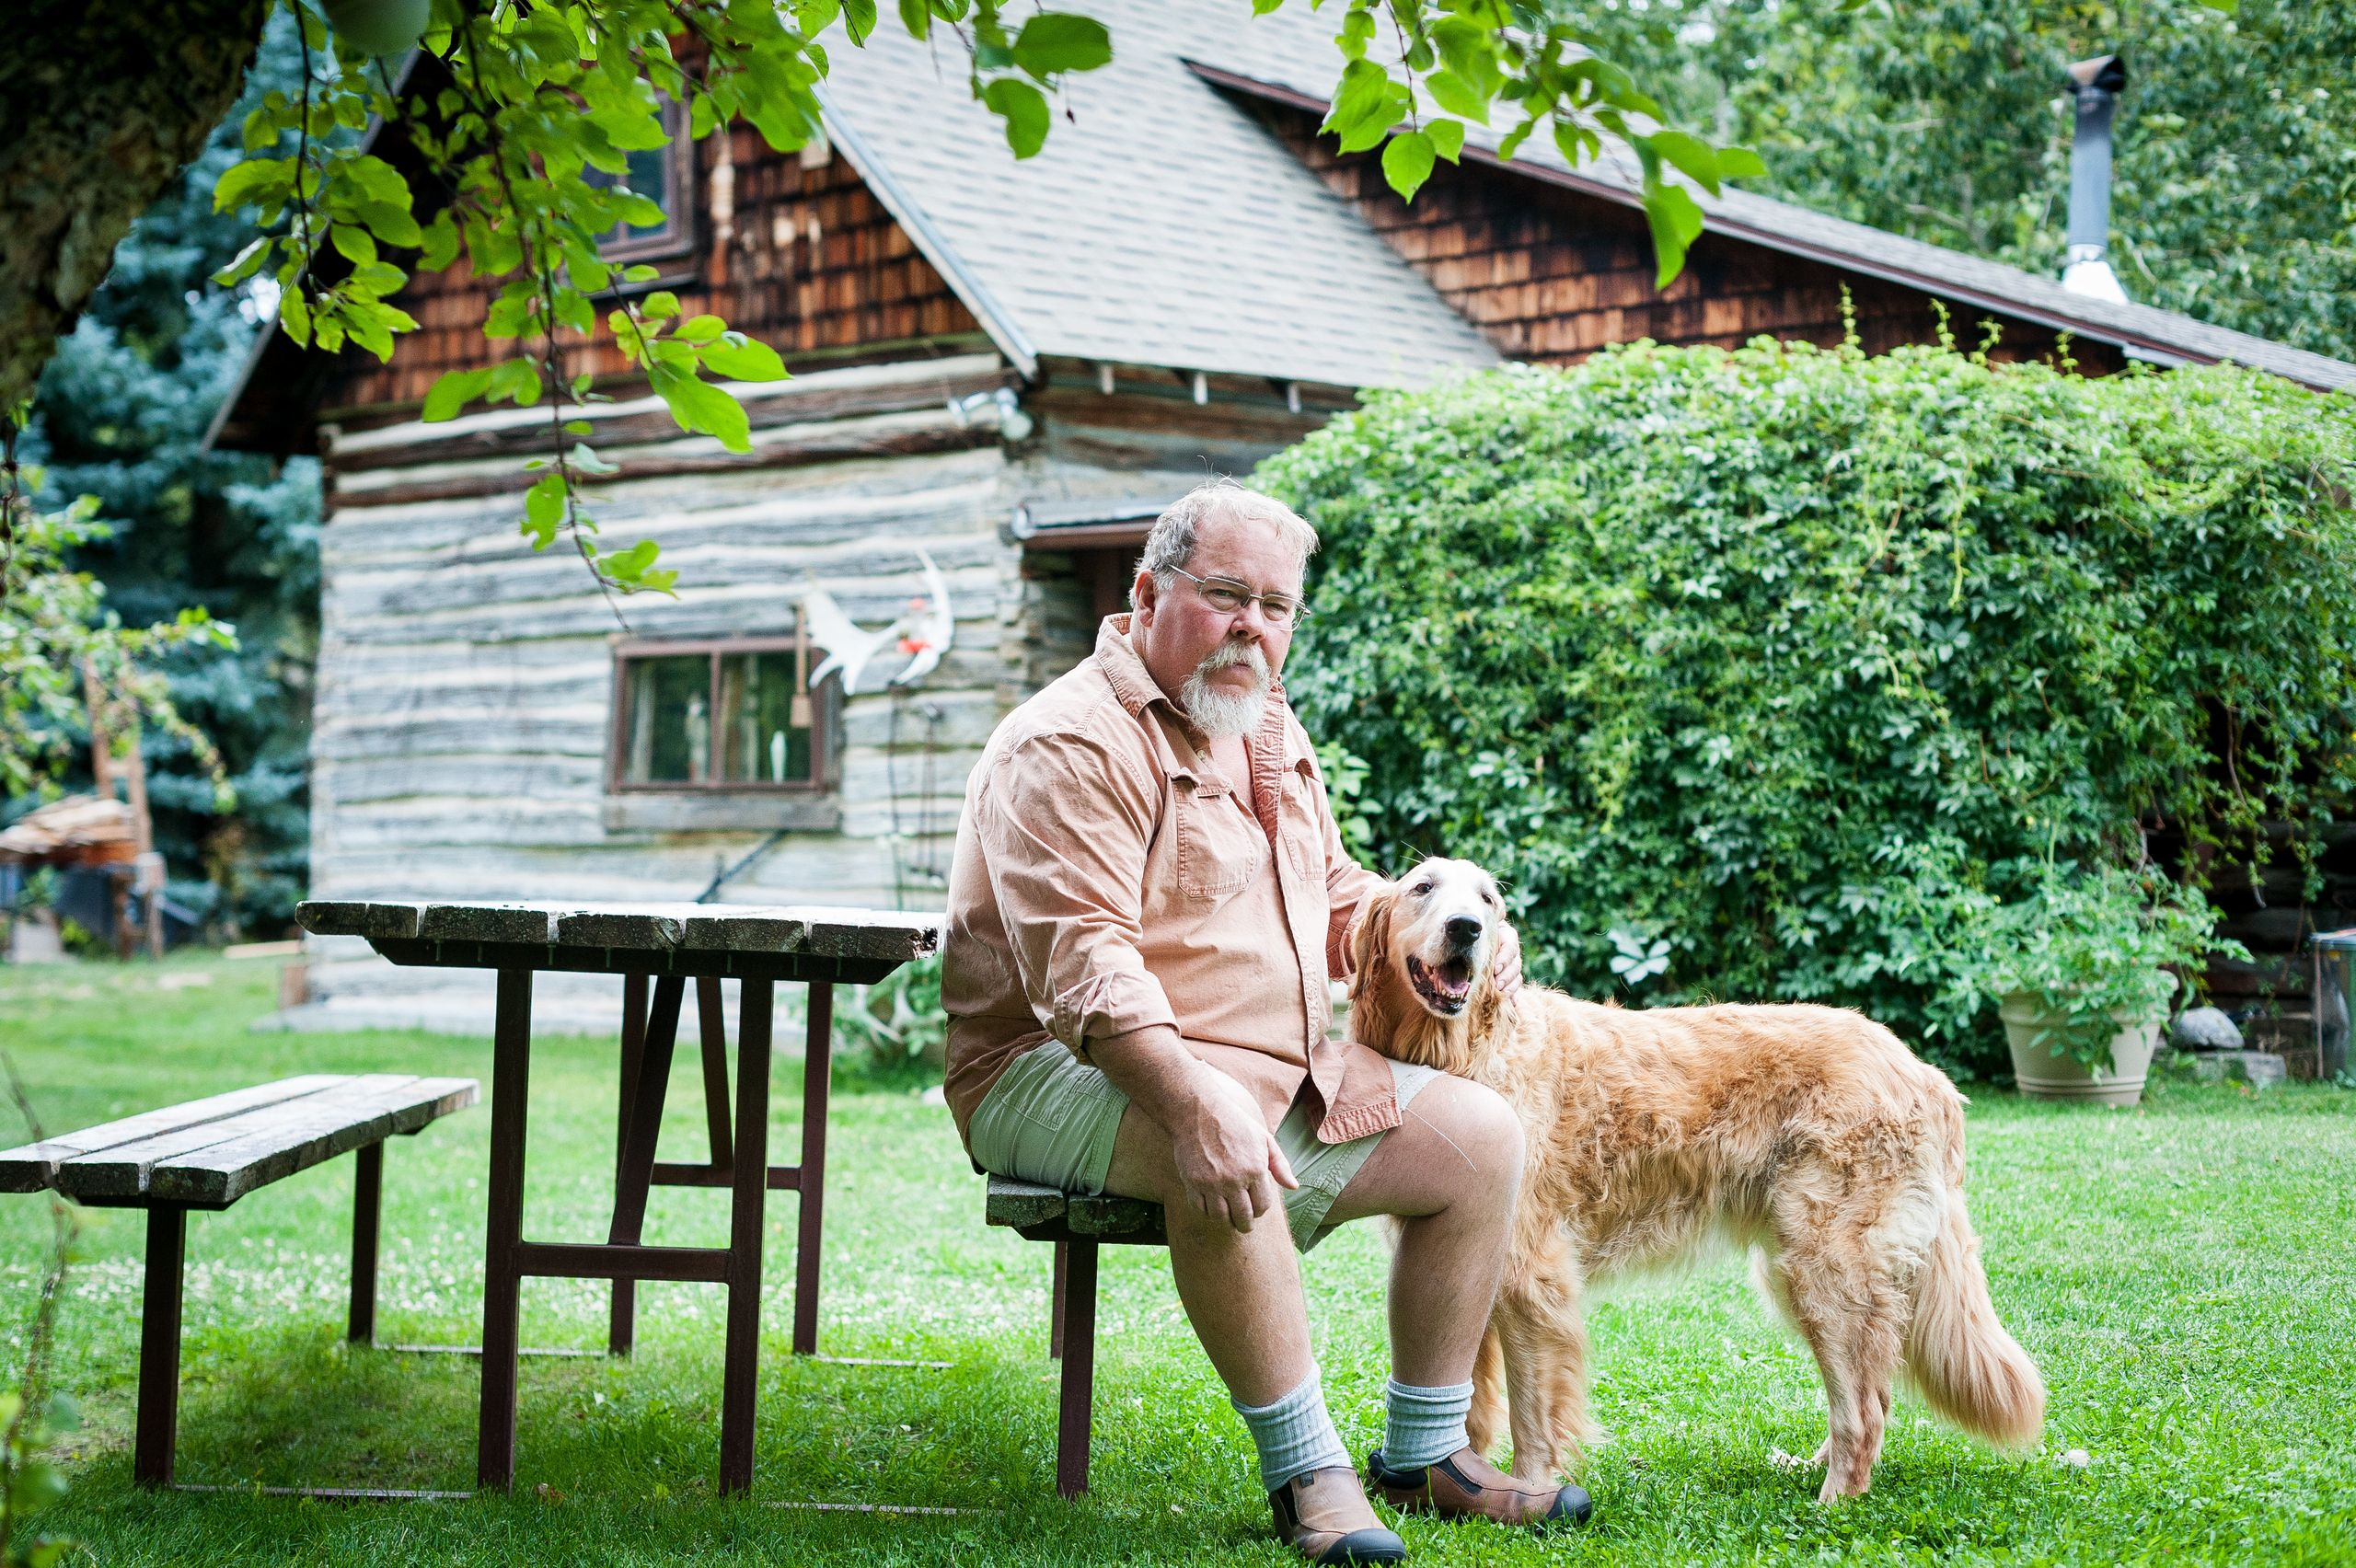 Dick Murphy lives with his dog, Annie, in a cabin along Mission Creek, east of Livingston.